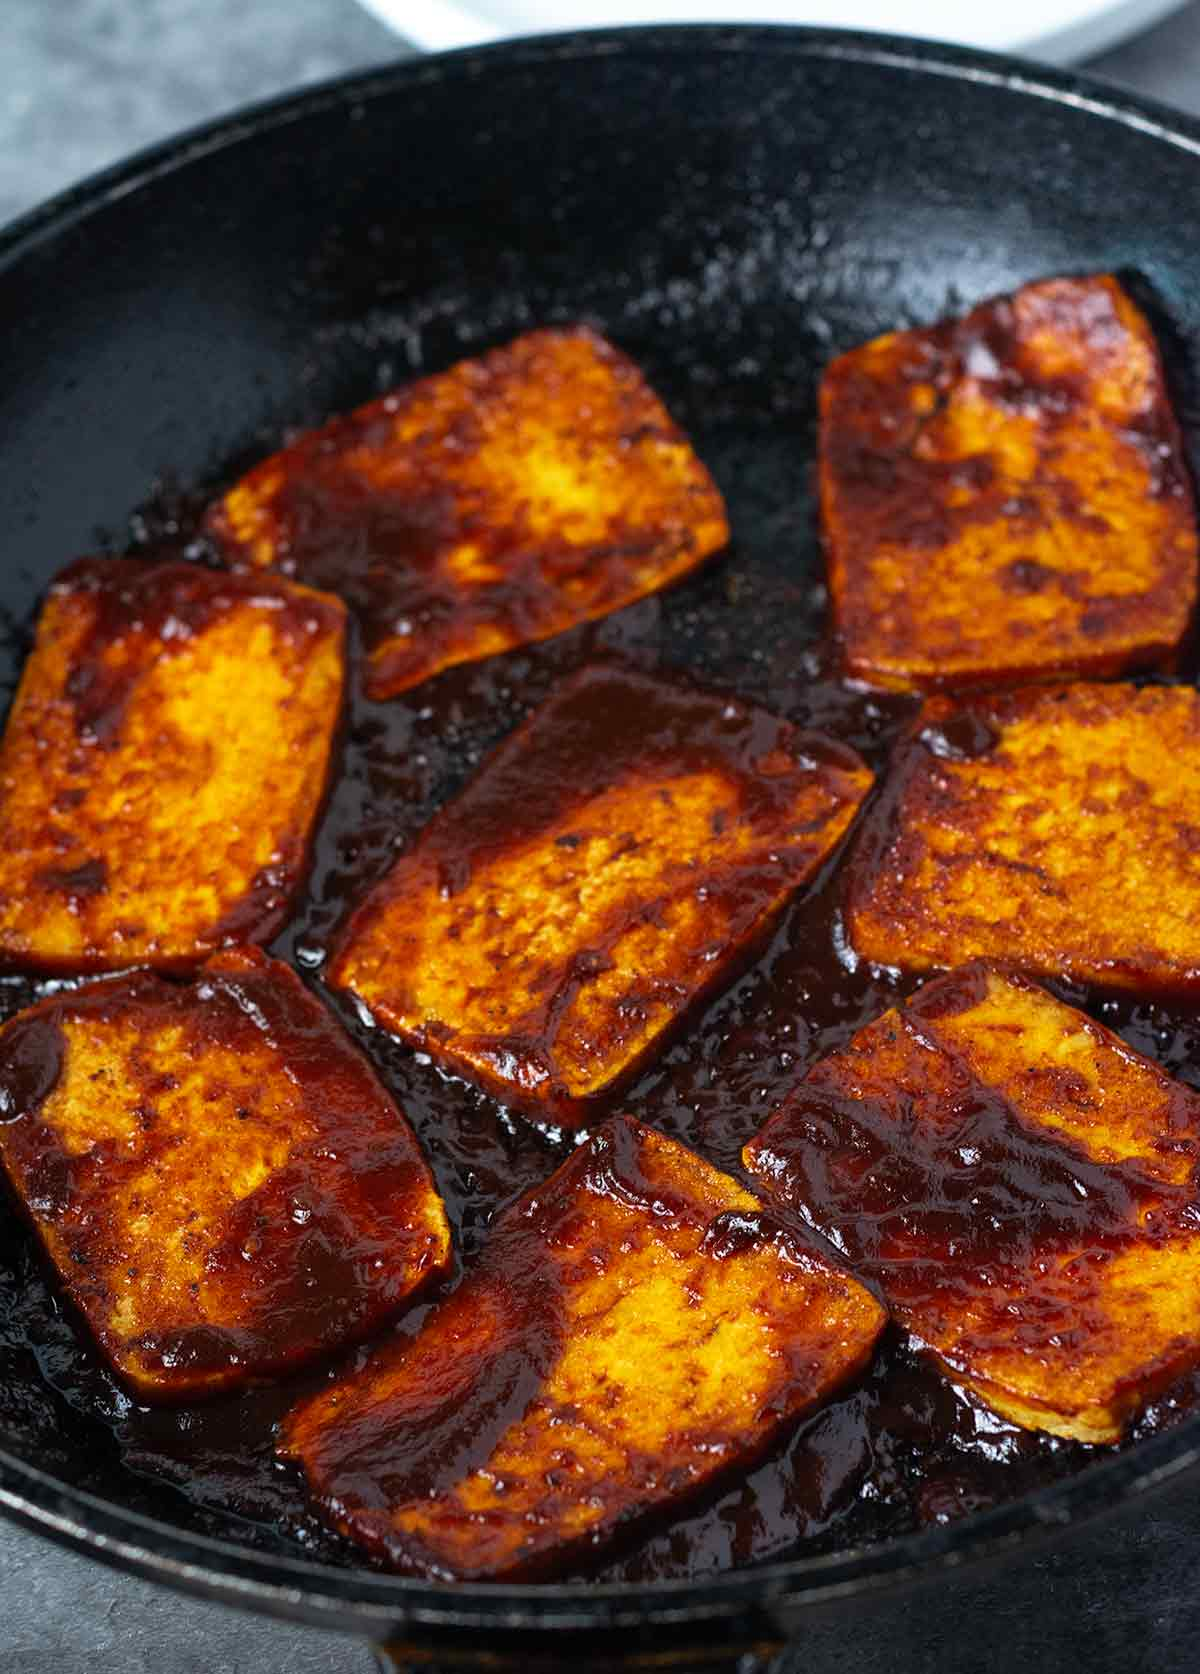 Barbecue tofu in a black skillet